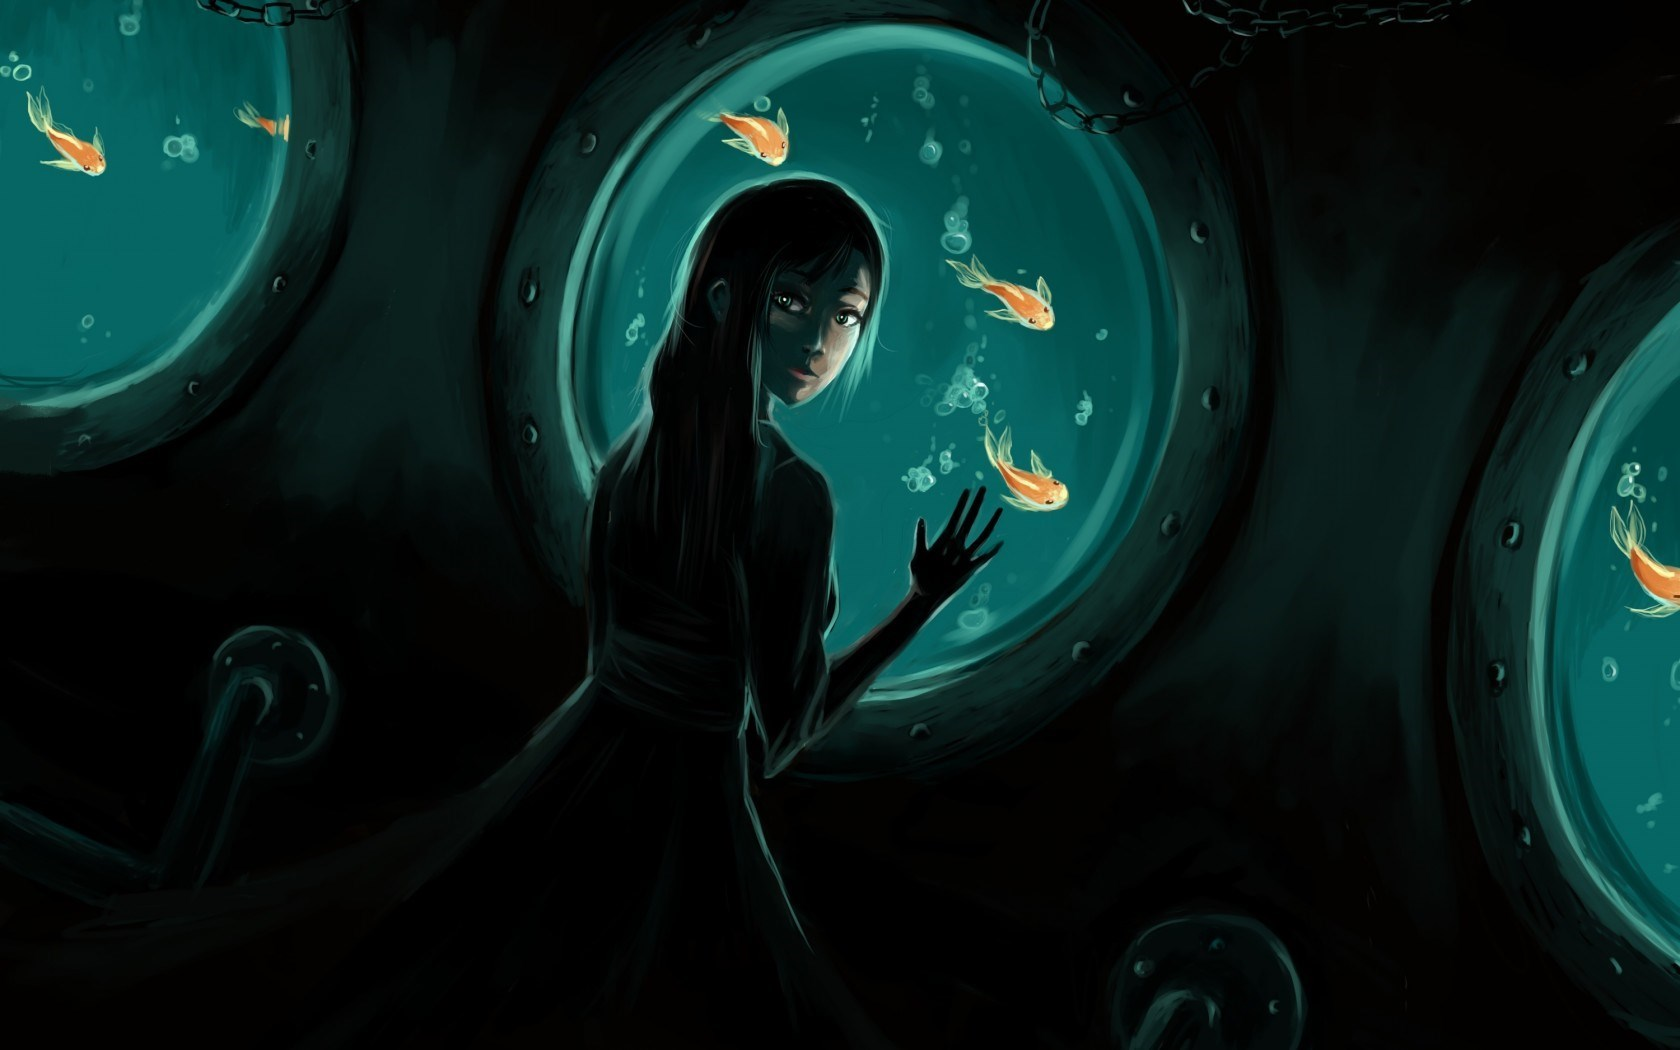 Girl Underwater Fish Artwork HD Wallpaper